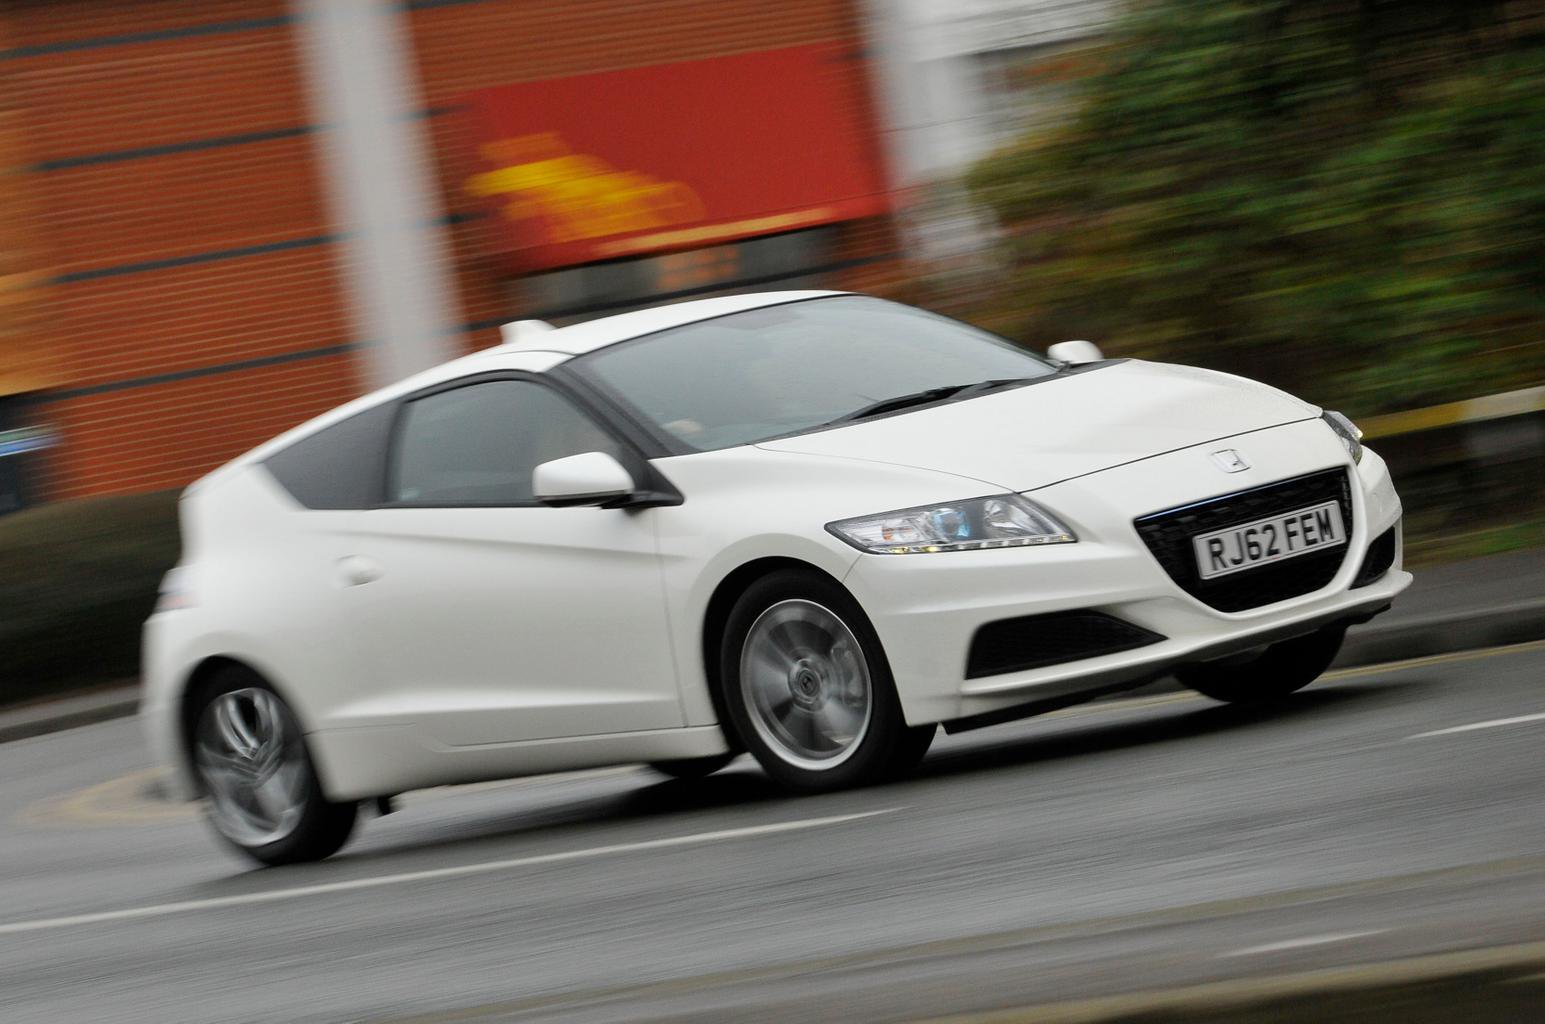 Best used hybrid cars (and the ones to avoid)